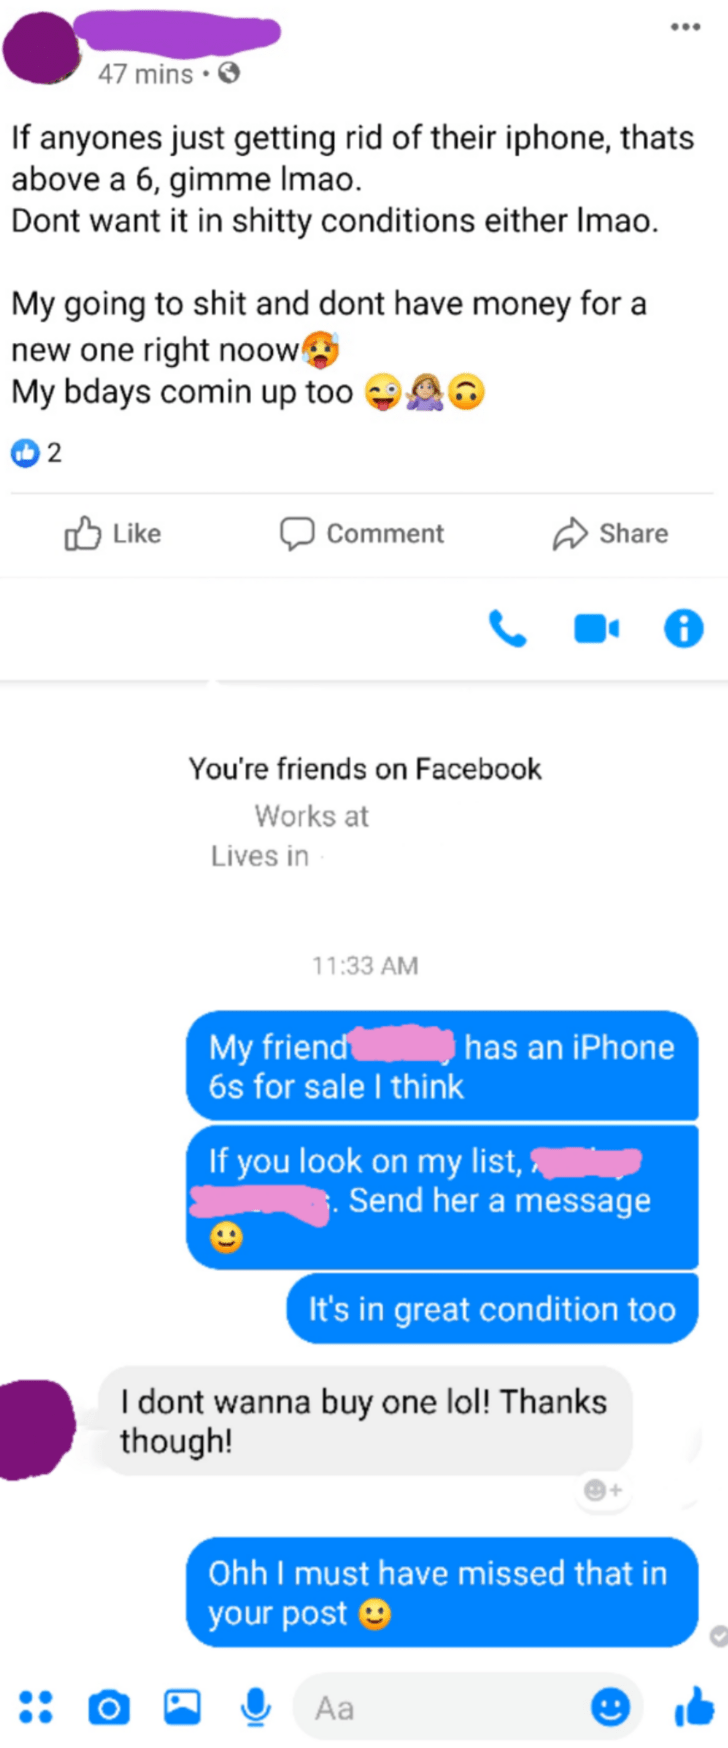 Text - Text - 47 mins • If anyones just getting rid of their iphone, thats above a 6, gimme Imao. Dont want it in shitty conditions either Imao. My going to shit and dont have money for a new one right noow My bdays comin up too לו Like Share Comment You're friends on Facebook Works at Lives in 11:33 AM My friend 6s for sale I think has an iPhone If you look on my list, Send her a message It's in great condition too I dont wanna buy one lol! Thanks though! Ohh I must have missed that in your pos